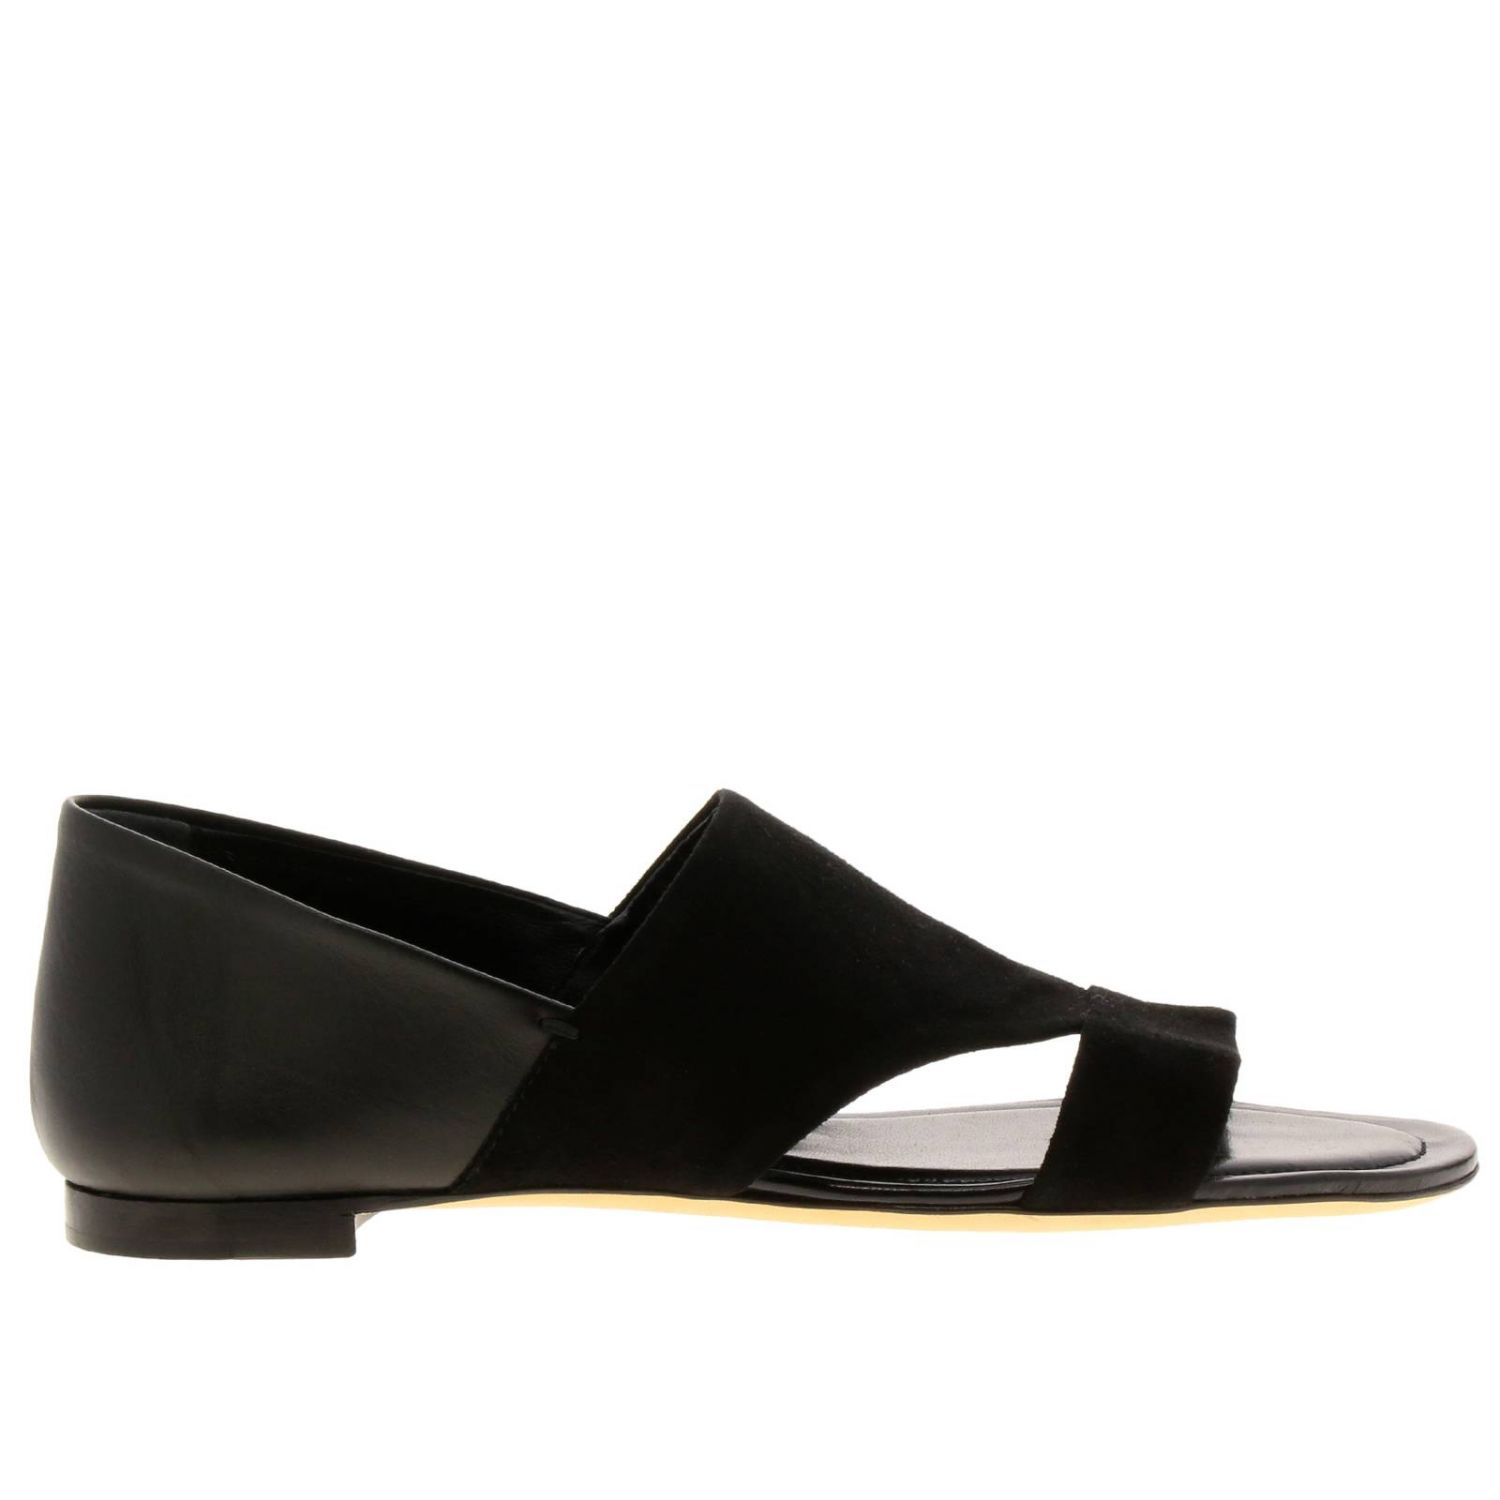 Sandales plates Tods: Chaussures femme Tod's noir 1